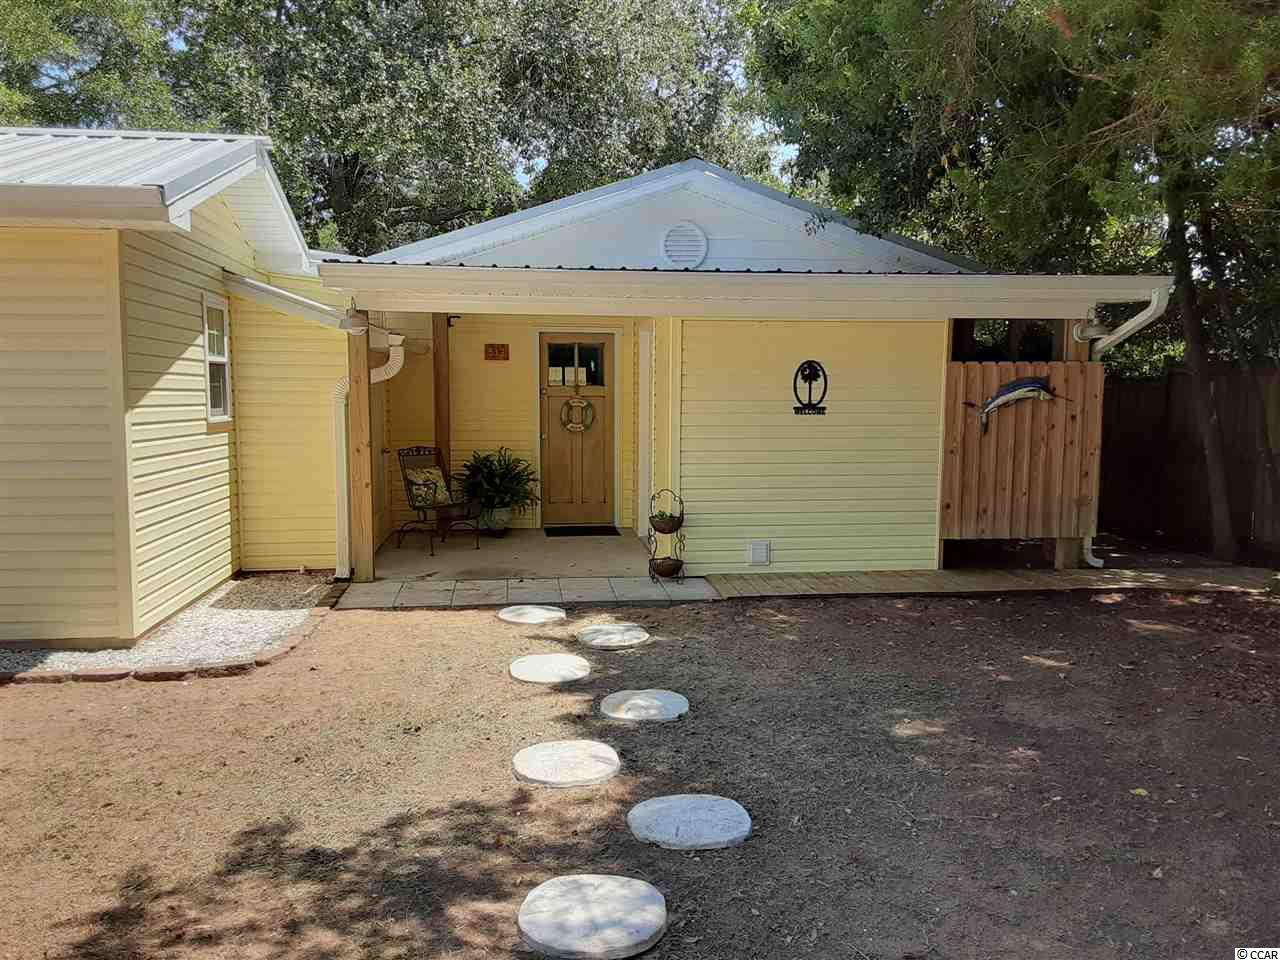 """If you are looking for a truly """"Hidden Gem"""", This Is It!! Totally remodeled in 2014. Thermal windows, outside bathroom, detached carport and storage. Lots of room for your boat, jet skis, golf cart and more. Wonderful marsh views from screen porch and large deck. No HOA. Appraisal done on 7/17/20 at 299,000. Motivated seller and will consider owner financing."""